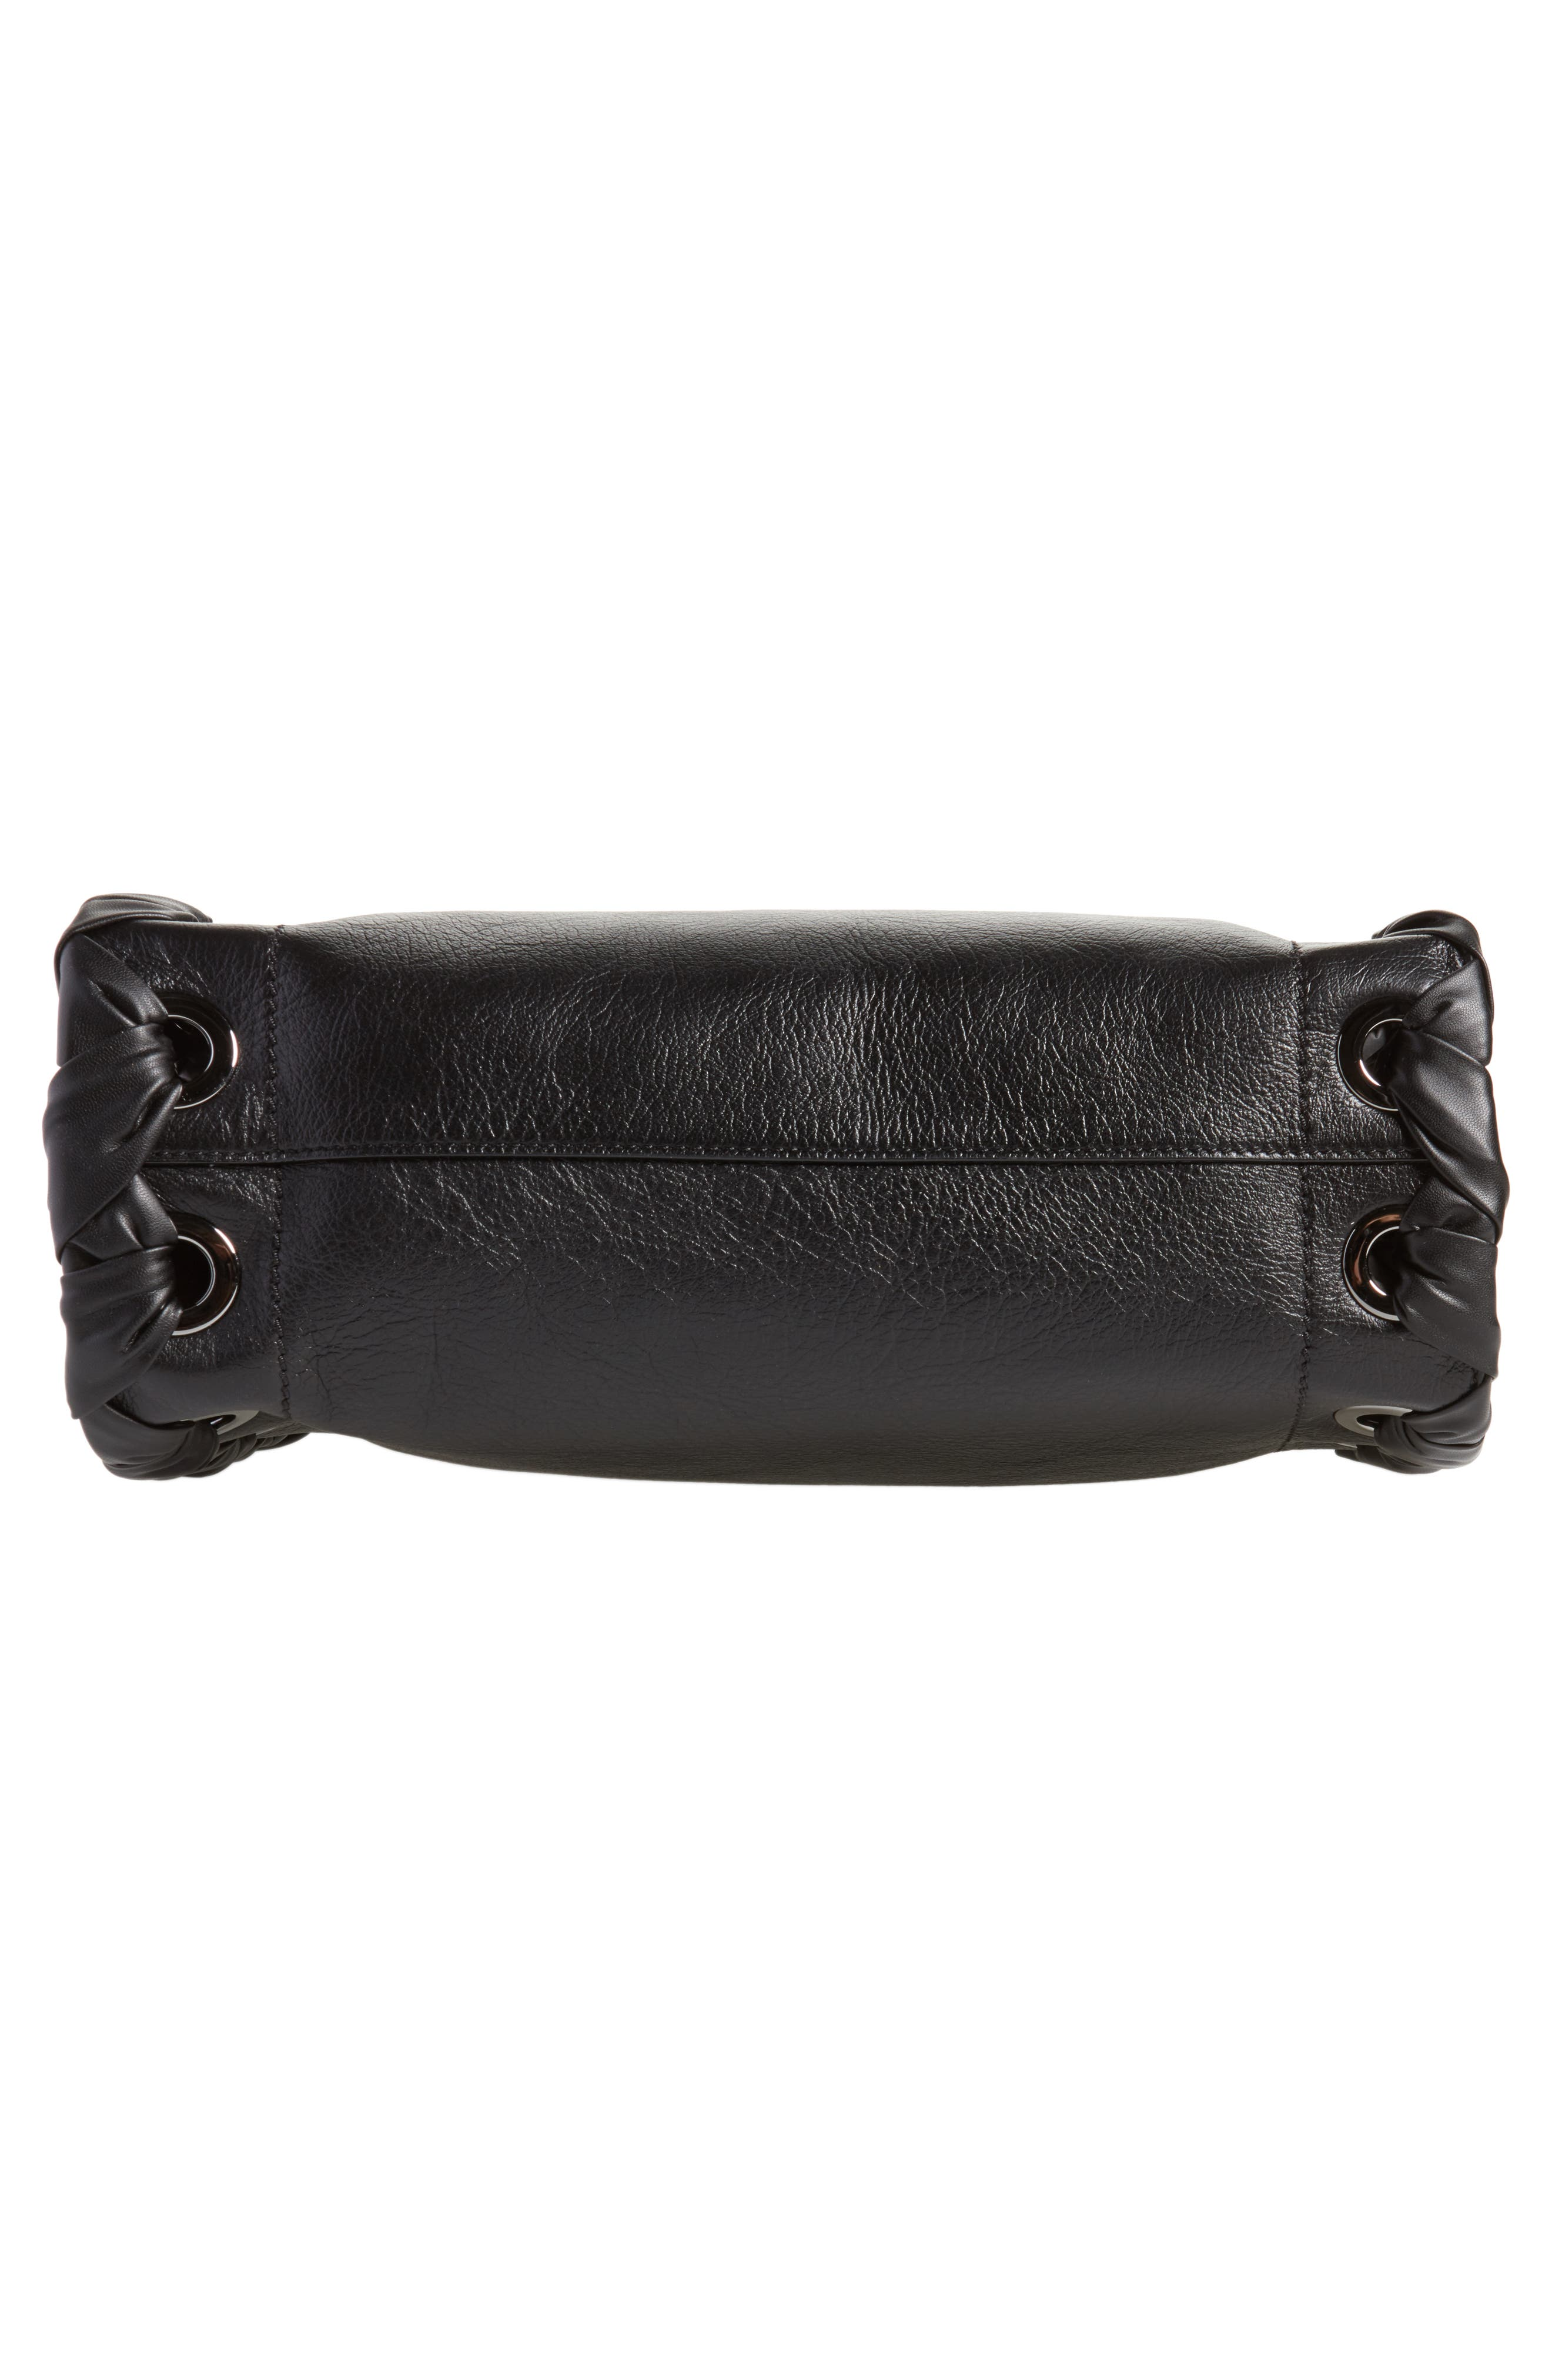 Rebel Leather Shoulder Bag,                             Alternate thumbnail 6, color,                             Black